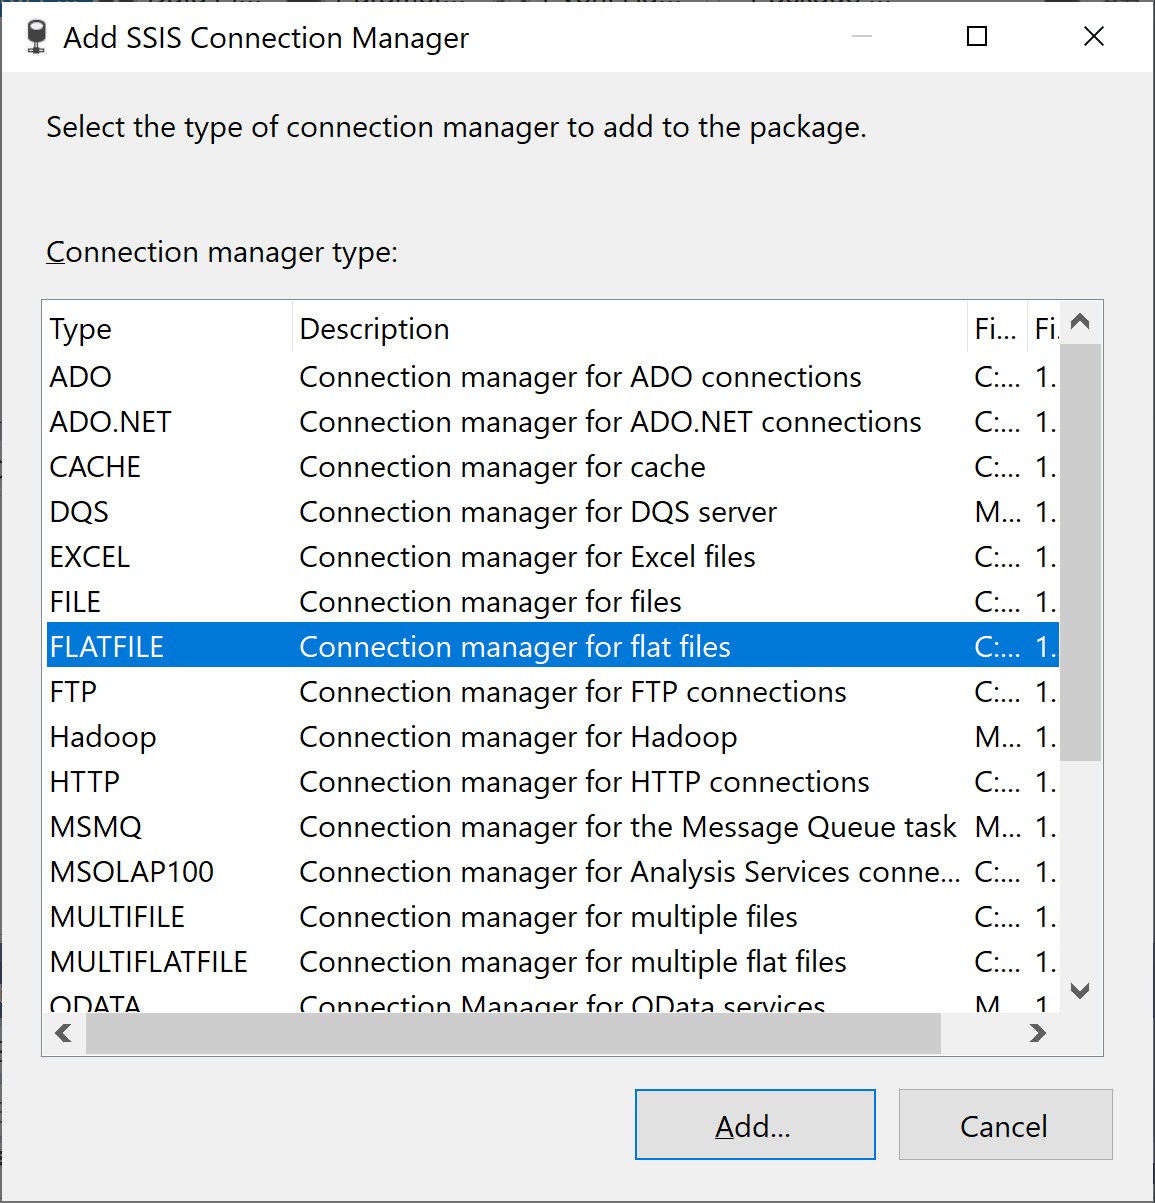 Add SSIS Connection Manager